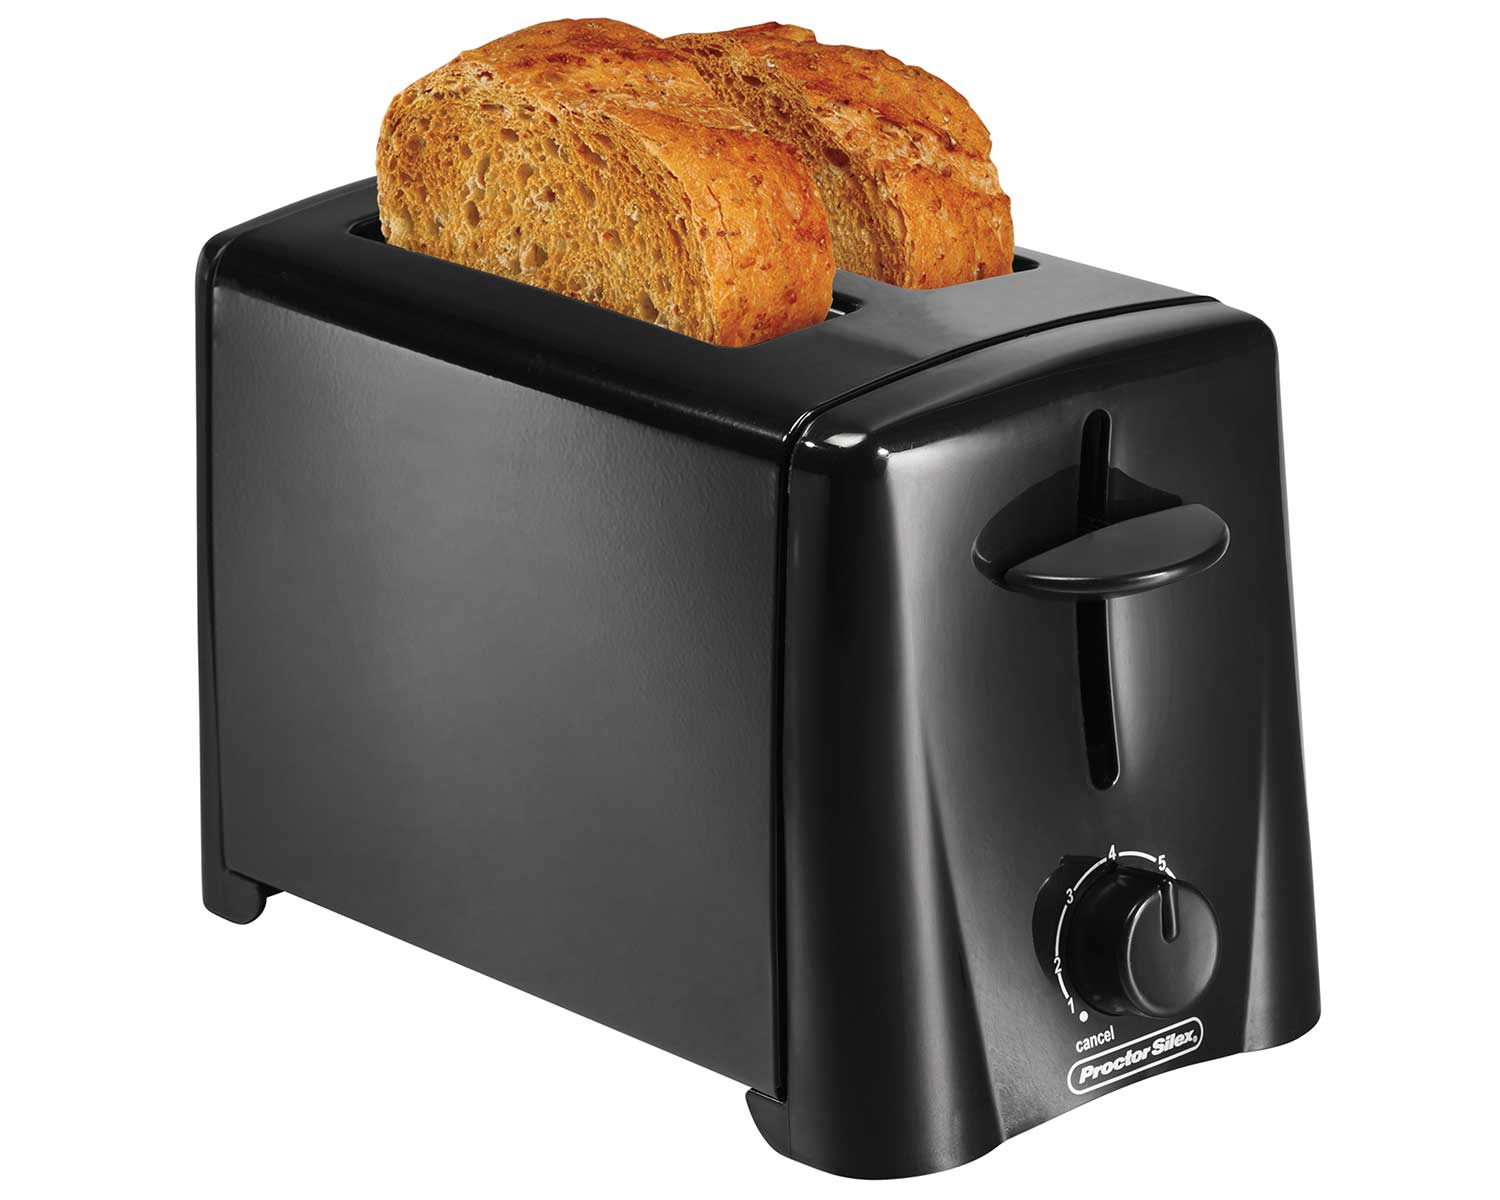 2-Slice Toaster (black)-22612 Small Size